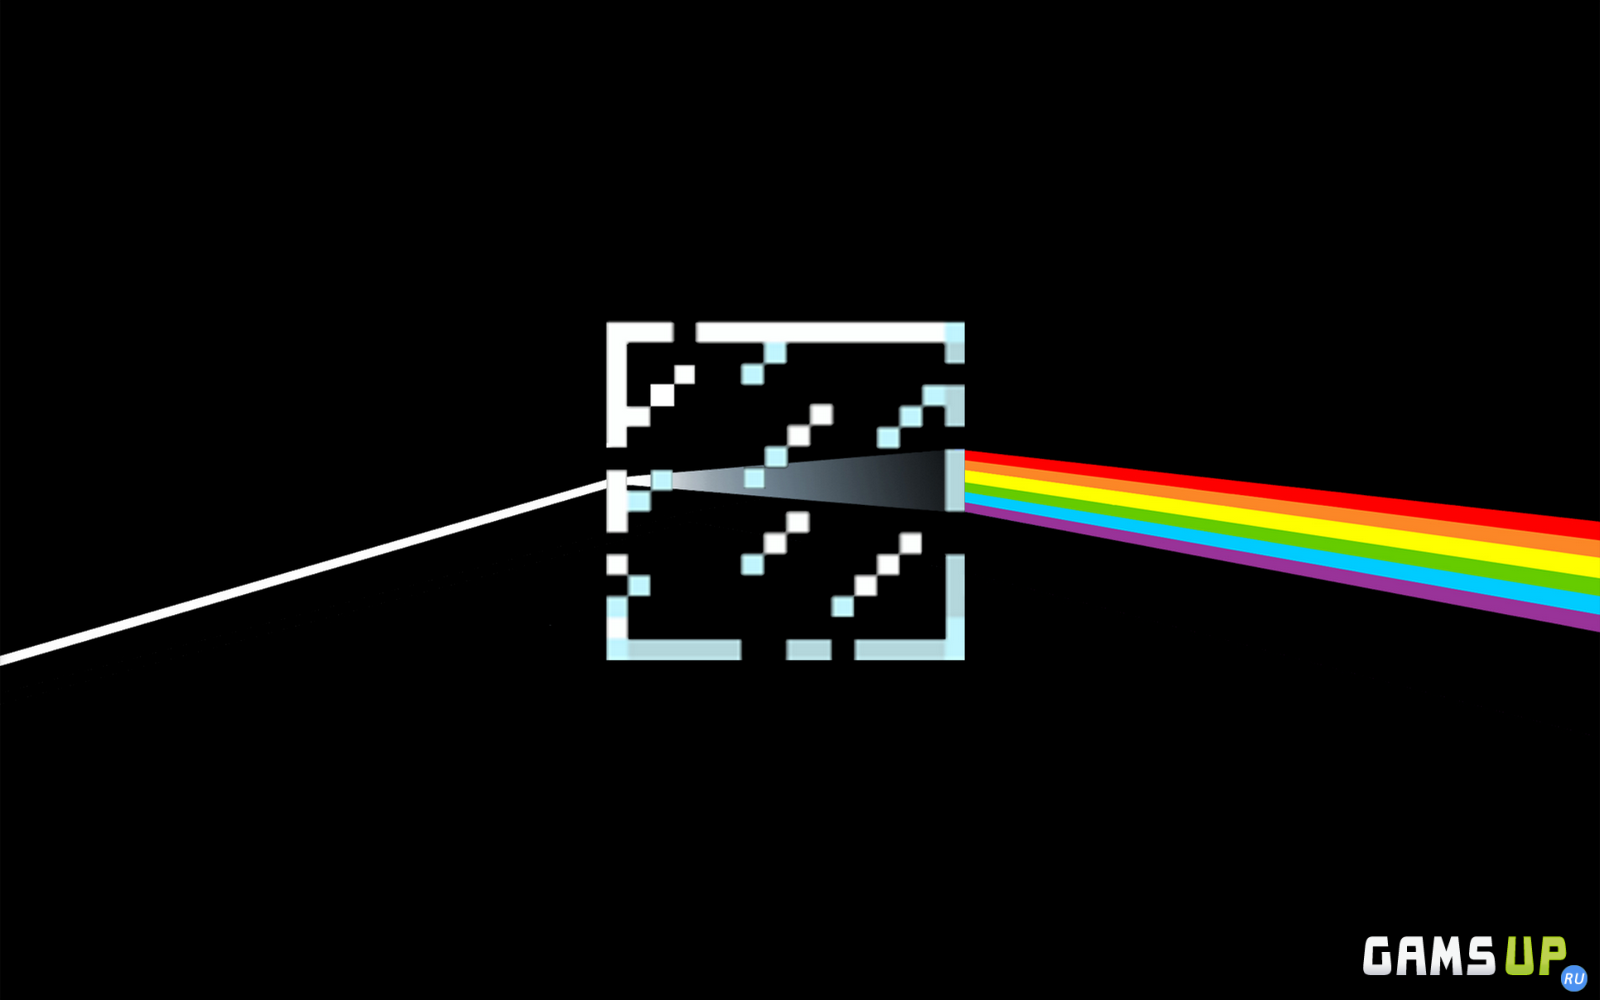 Minecraft Pink Floyd The Dark Side Of The Moon Glass block epic 1600x1000